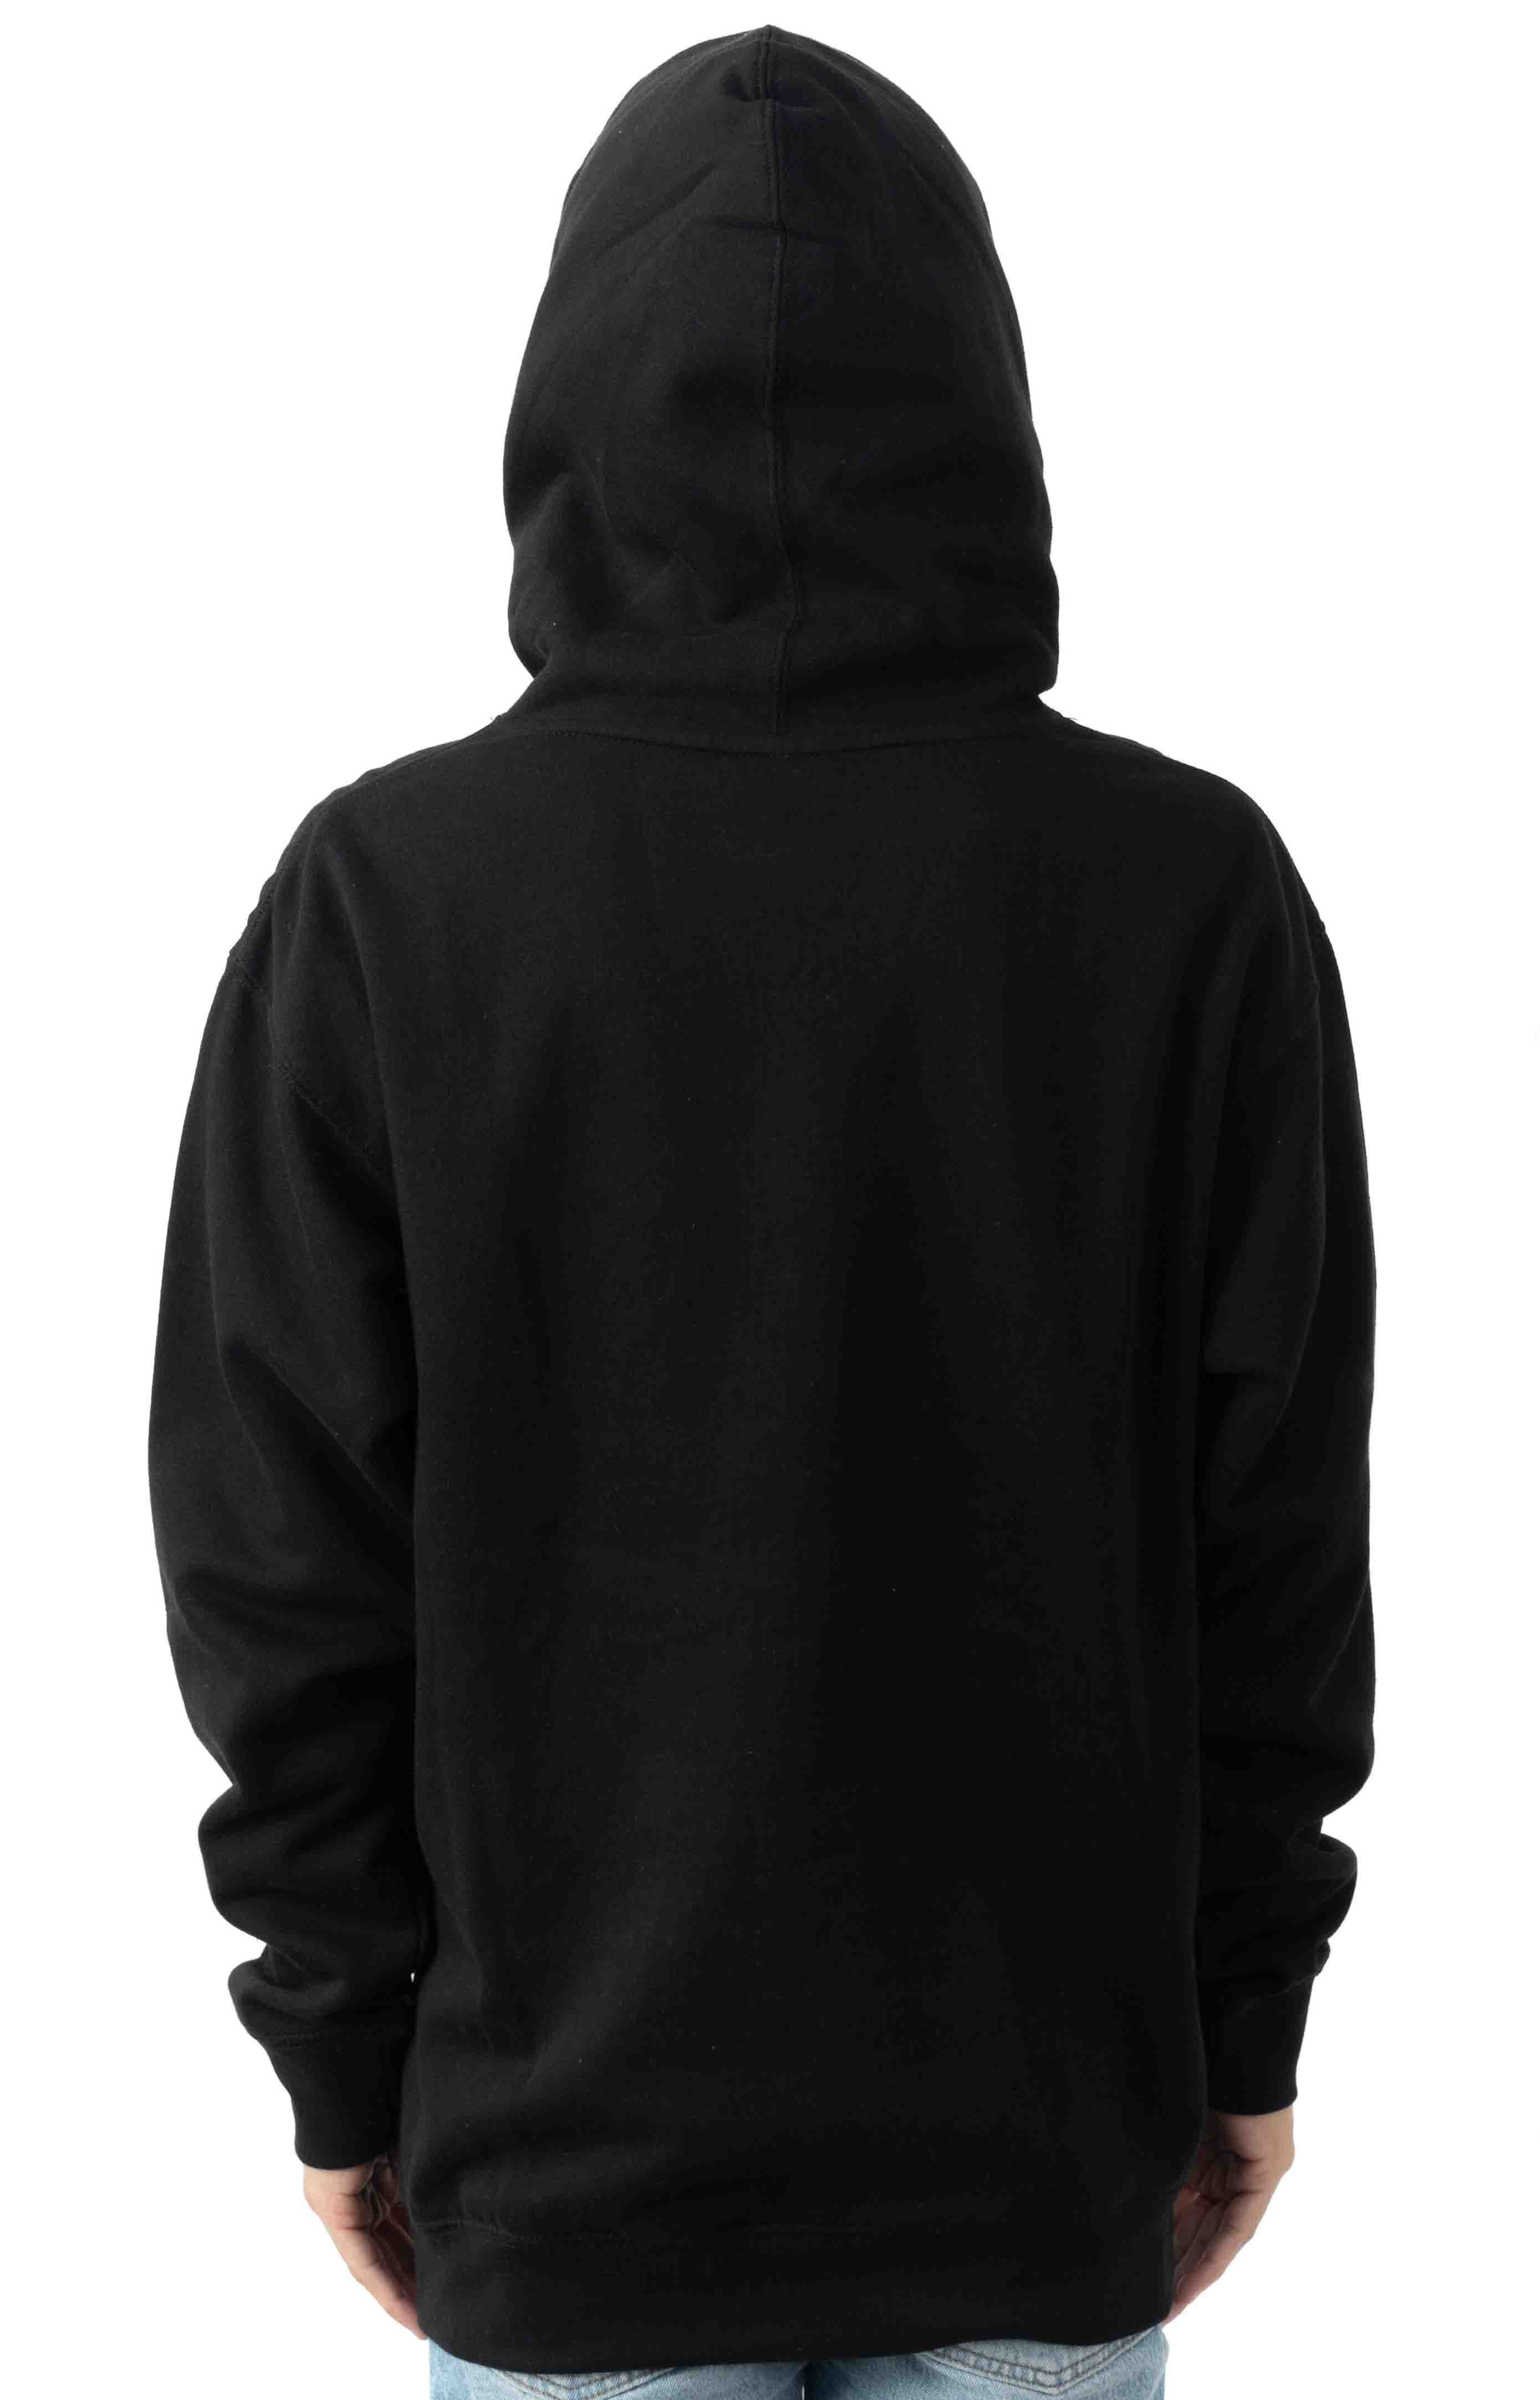 Ring Around Carrot Pullover Hoodie - Black  3